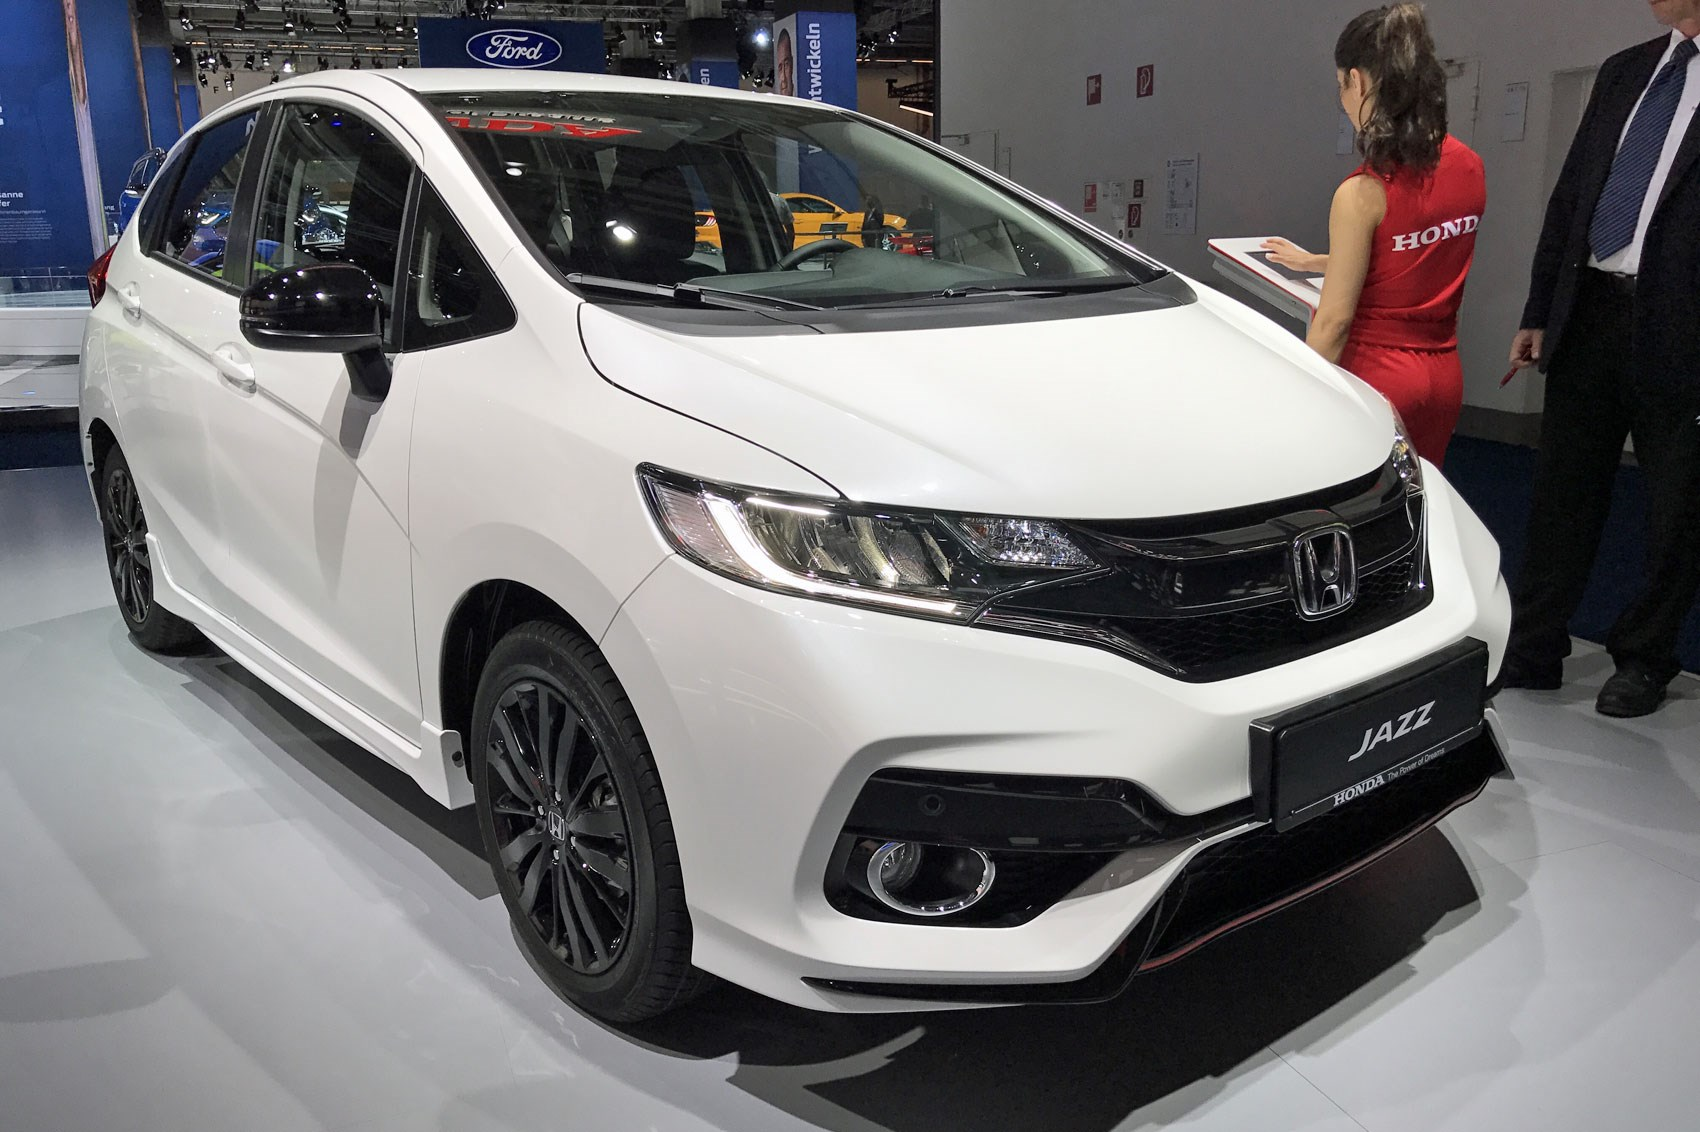 new honda jazz 2018 uk prices for facelifted mini civic revealed by car magazine. Black Bedroom Furniture Sets. Home Design Ideas